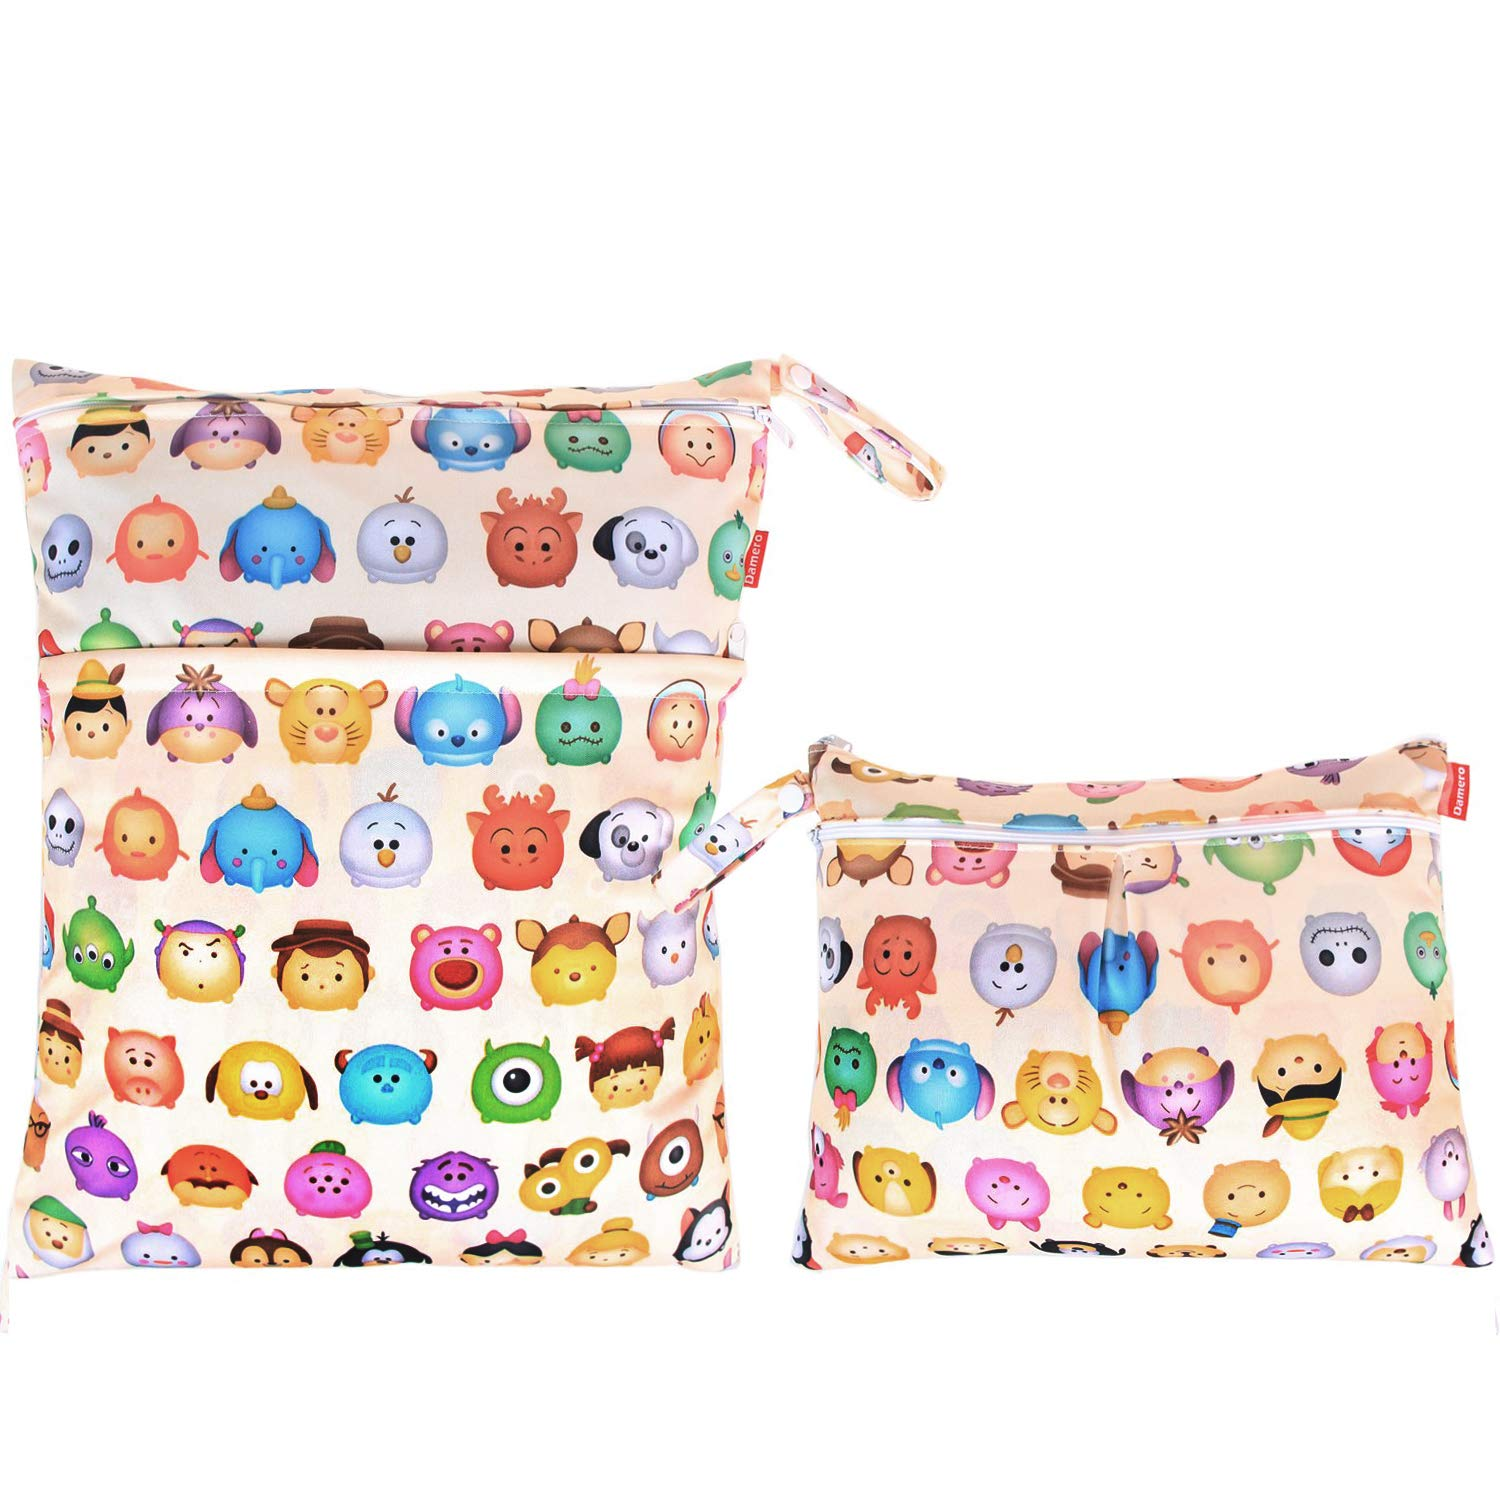 Damero 2pcs Travel Wet and Dry Bag, Reusable Wet Bags Organizer with Two Zippered Pocket for Cloth Diaper, Pumping Parts, Swimsuit and Gym, Cartoon Animals